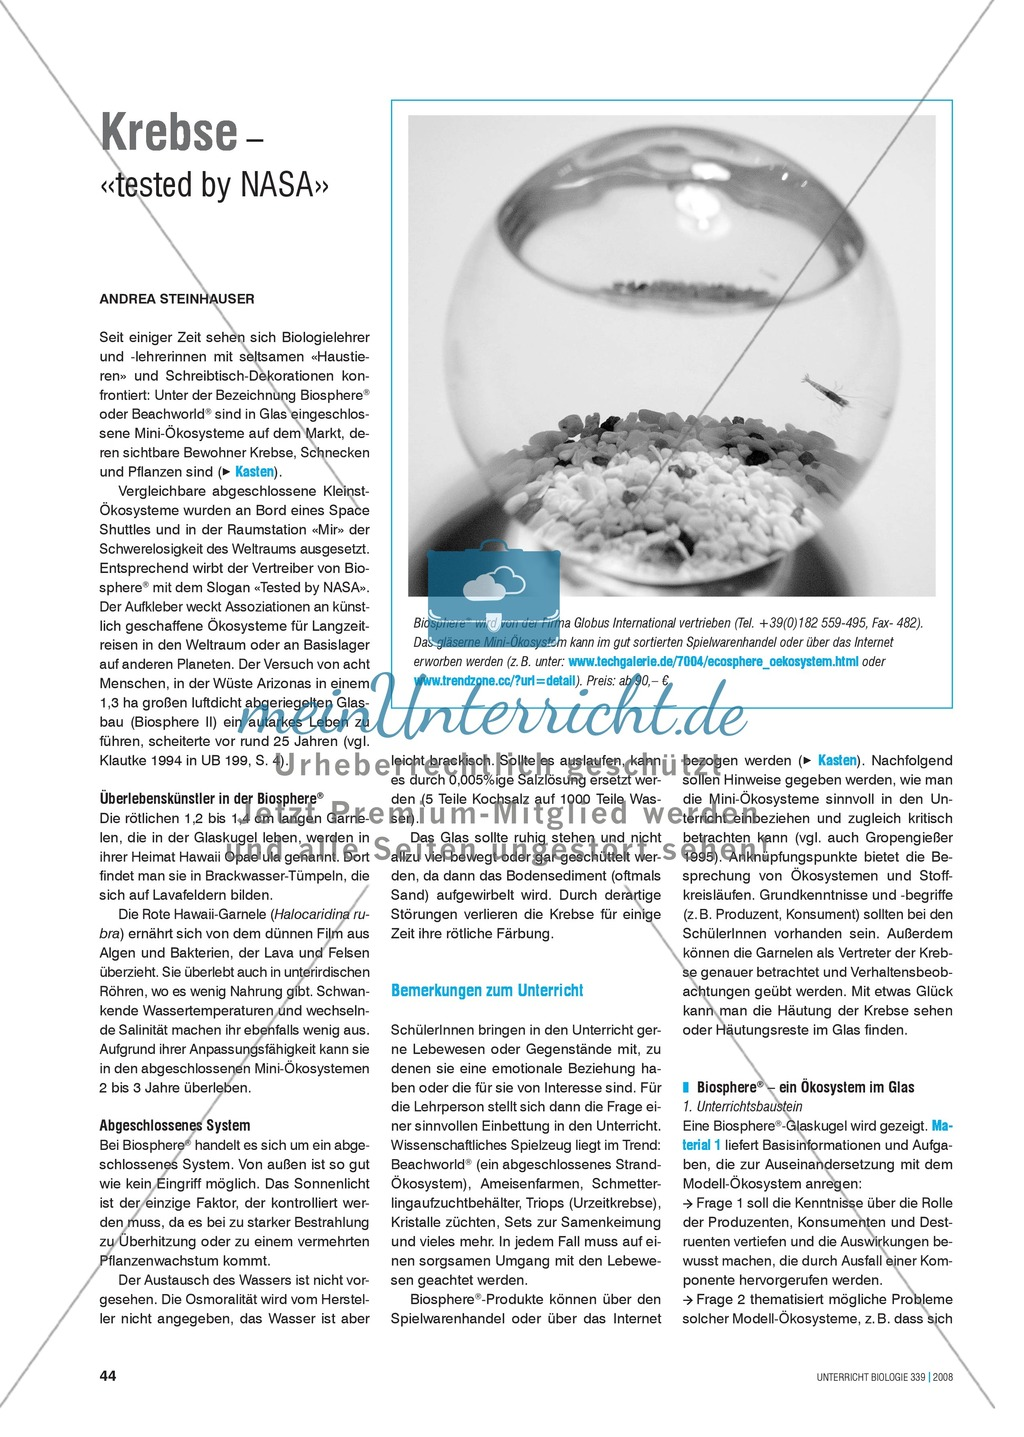 Krebse: Biosphere/Beachworld - Mini-Ökosysteme im Glas Preview 0